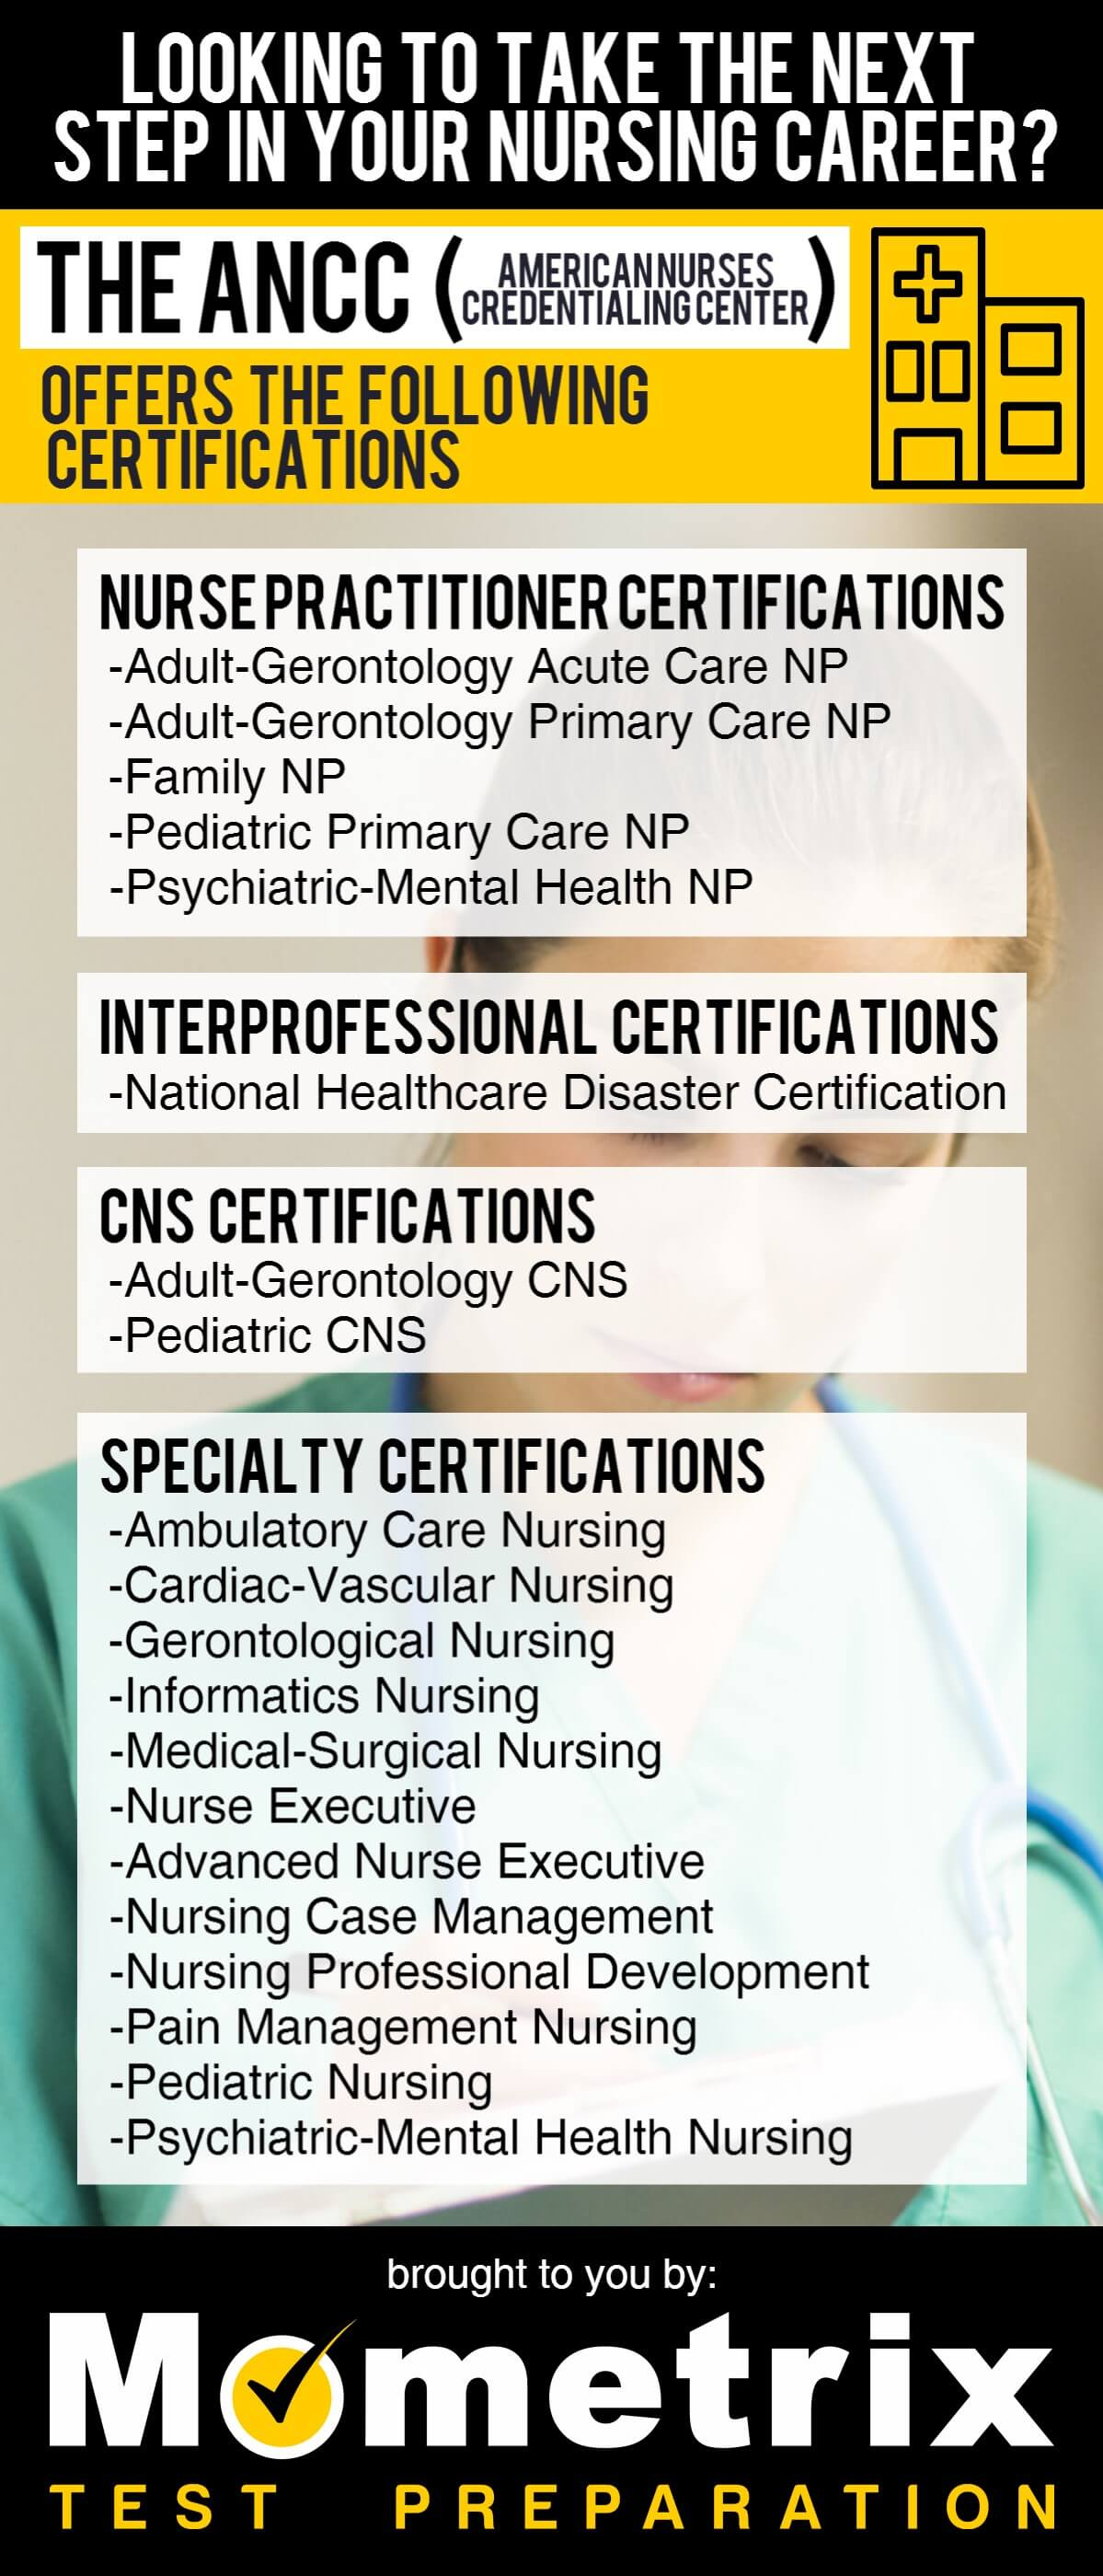 Nurse Executive Certification (NE-BC) | ANCC